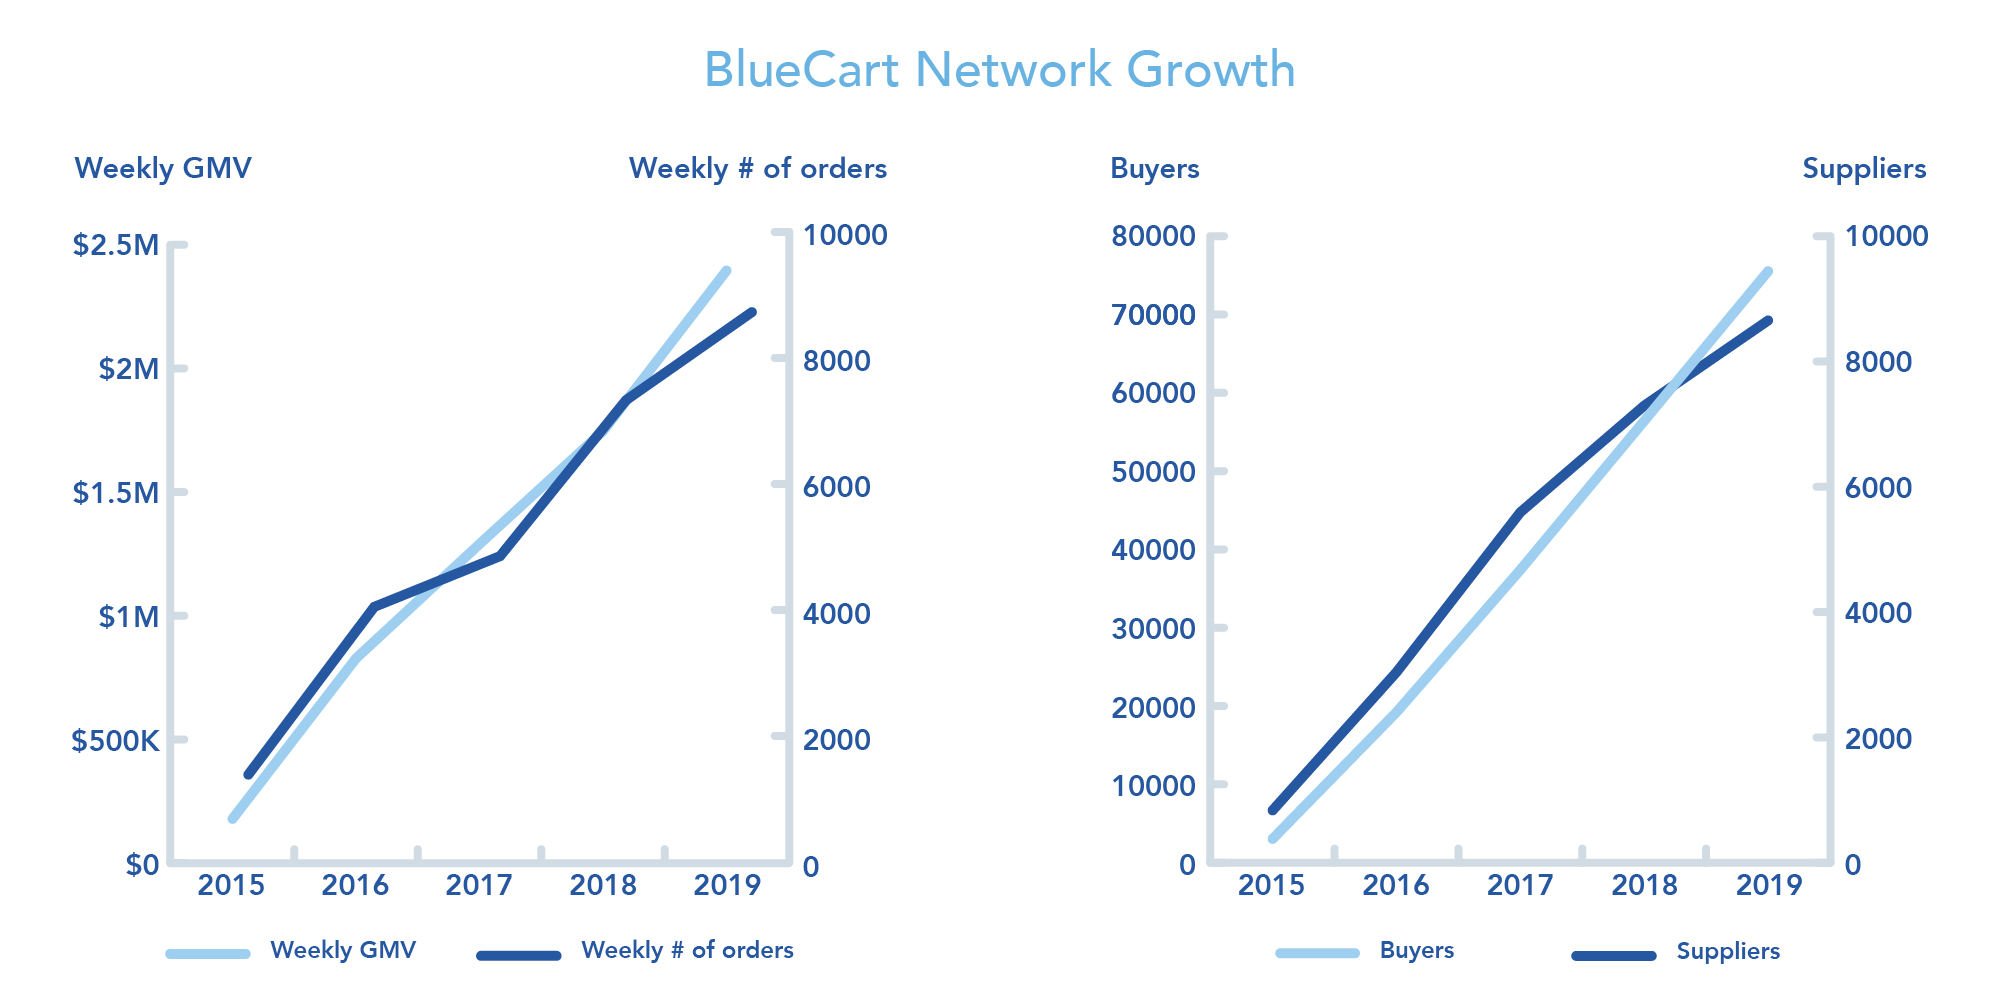 BlueCart Network Growth